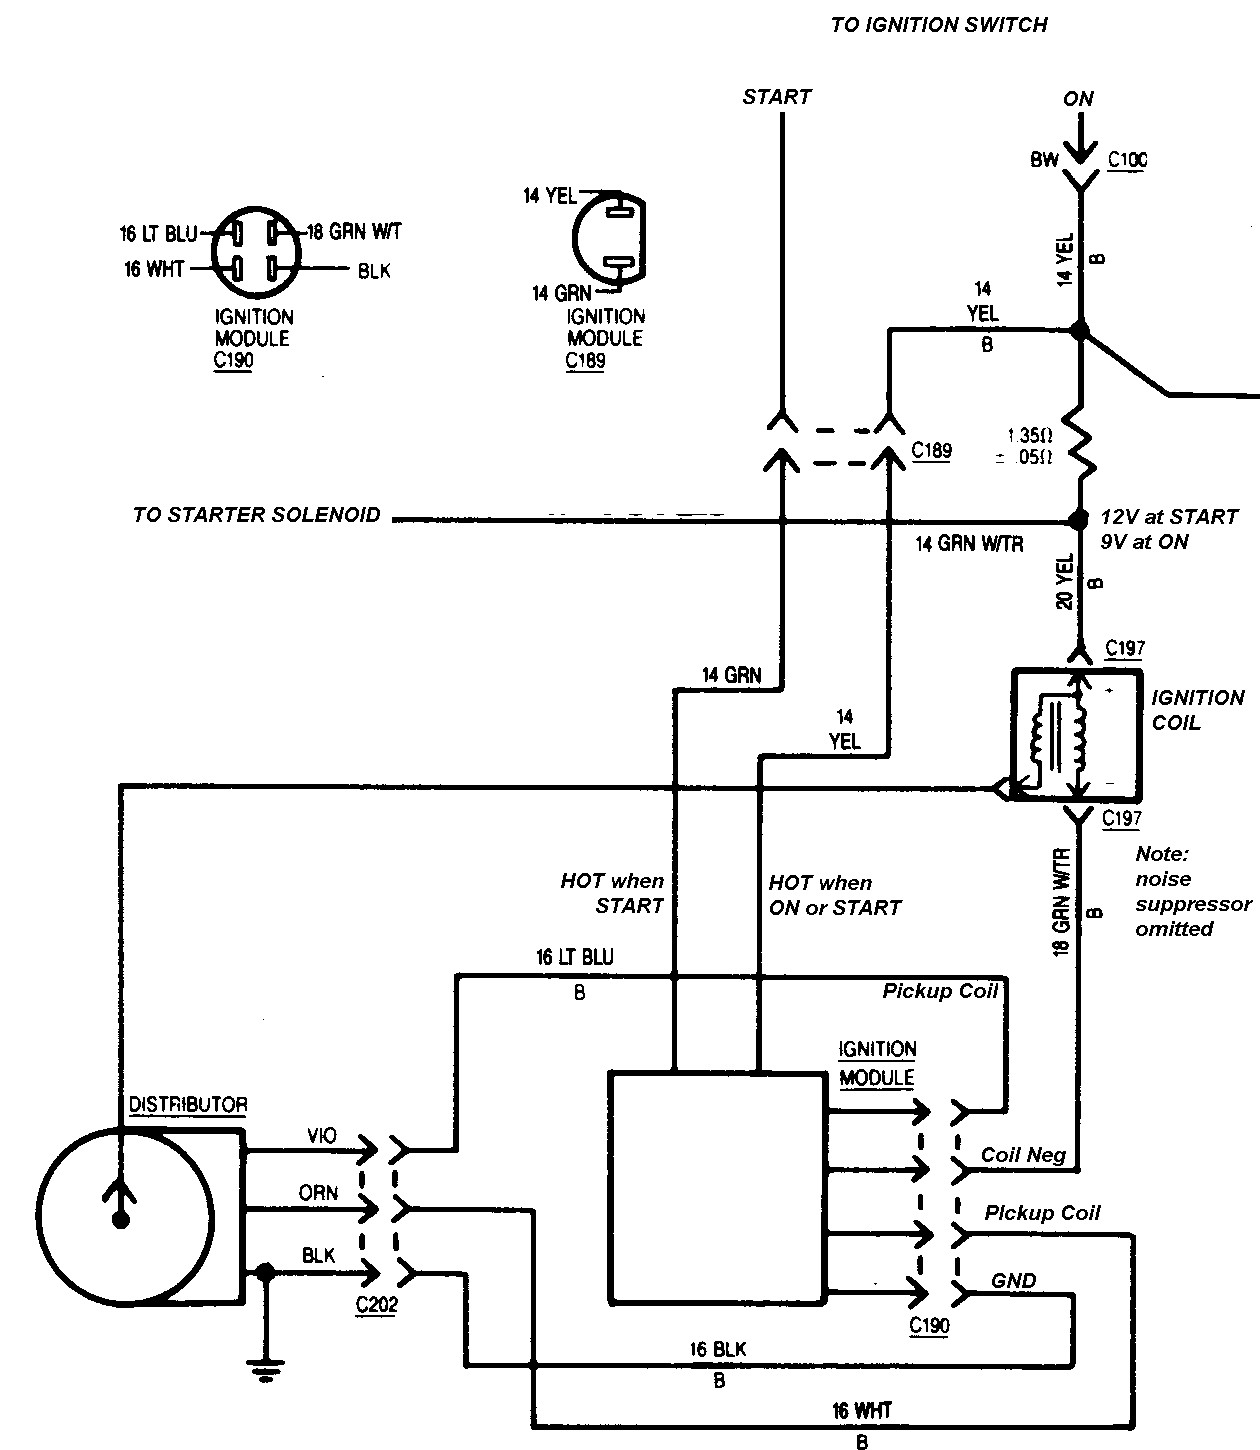 Gm Tbi Wiring Conversion Diagram Free For You 87 Mustang Main Harness Chevy Get Image About 89 Truck Schematic